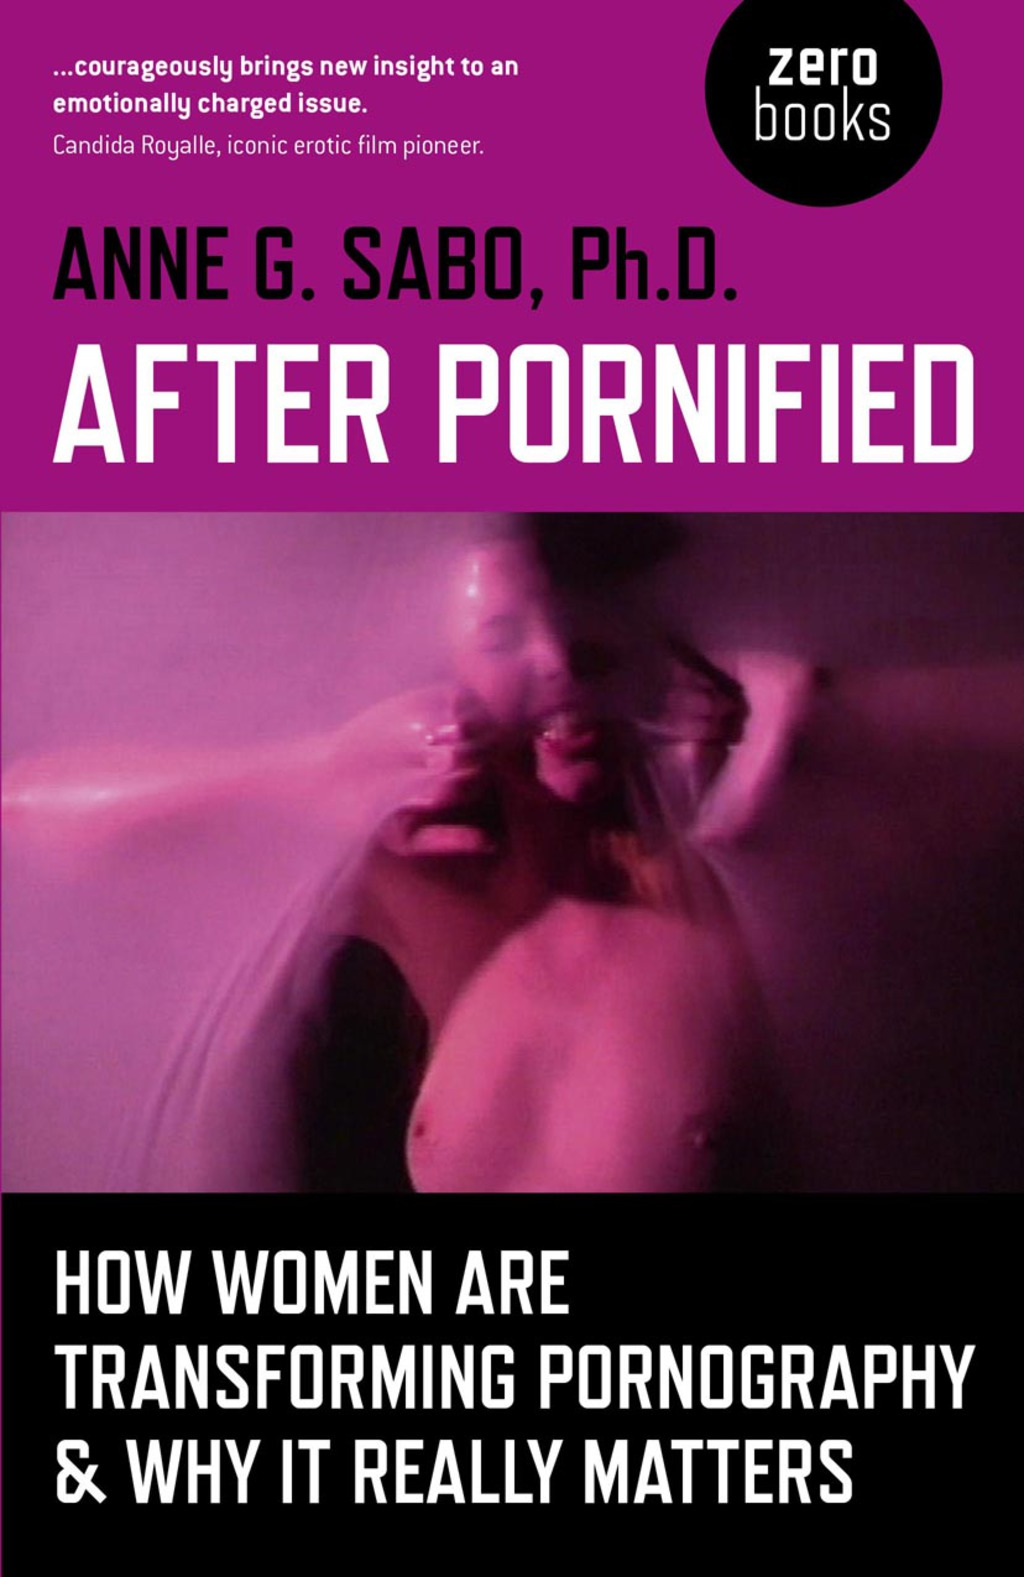 After Pornified: How Women Are Transforming Pornography & Why It Really Matters (ebook) eBooks